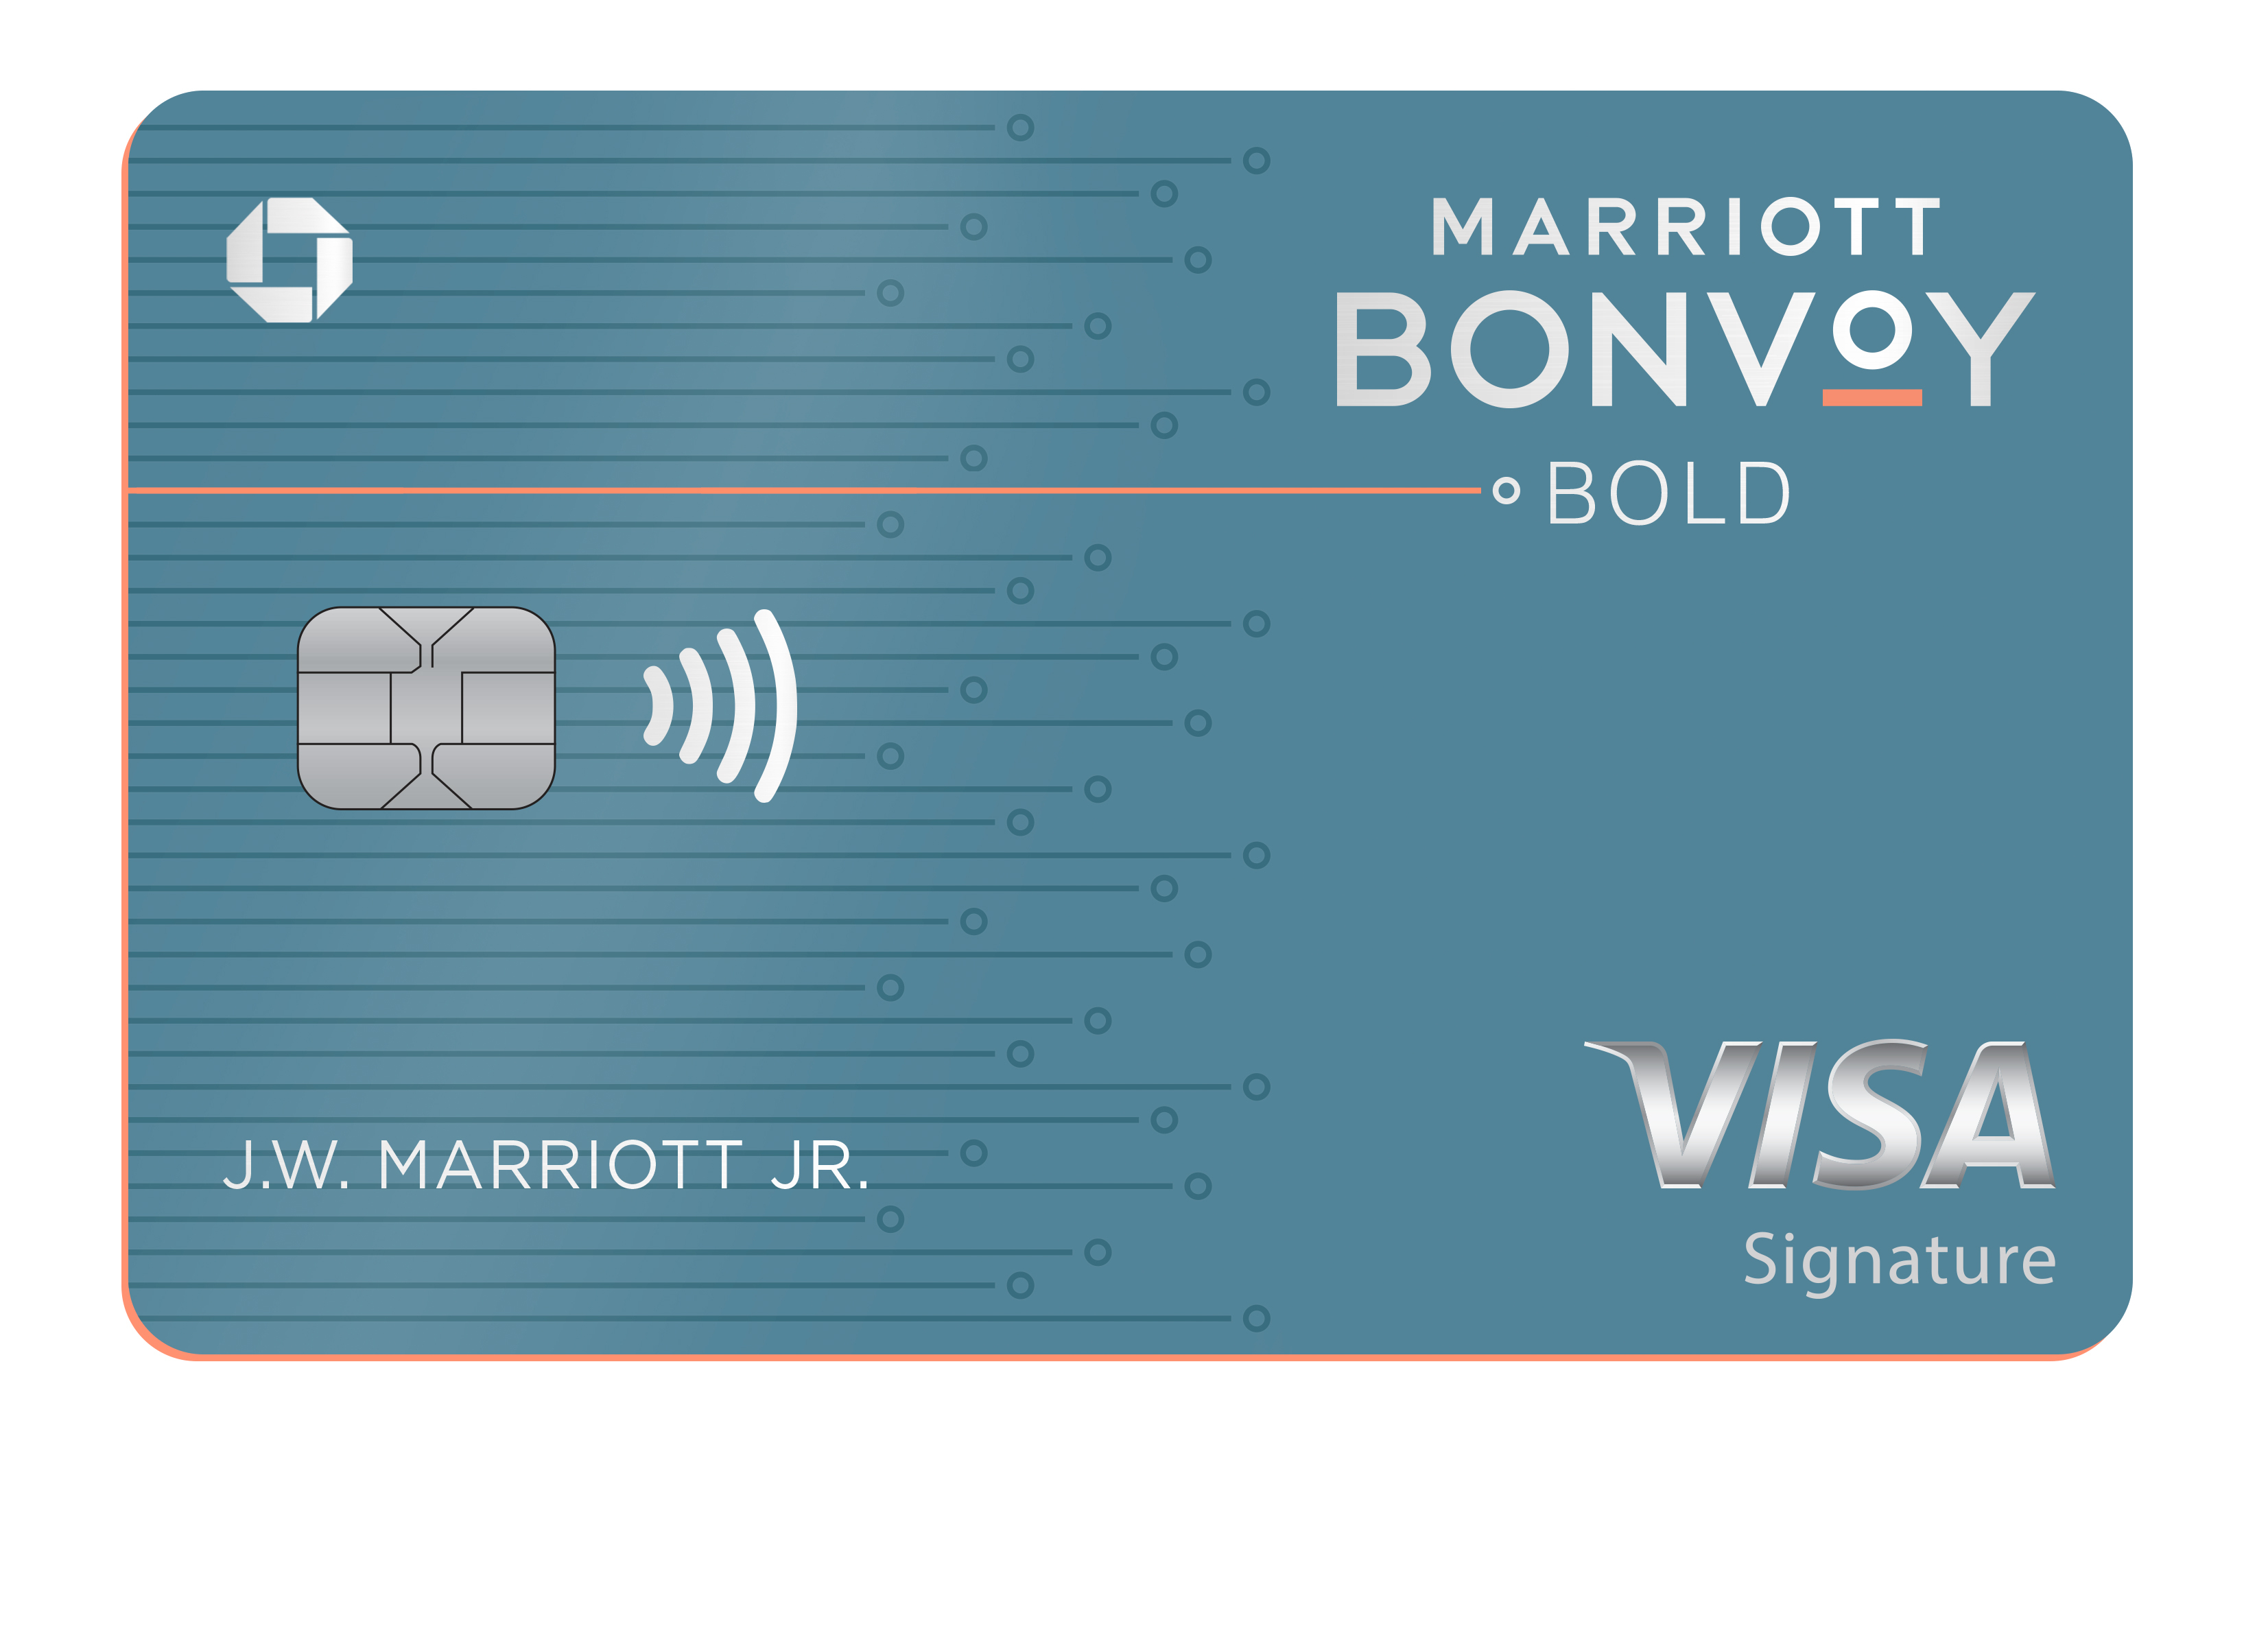 Chase And Marriott International Launch No Annual Fee